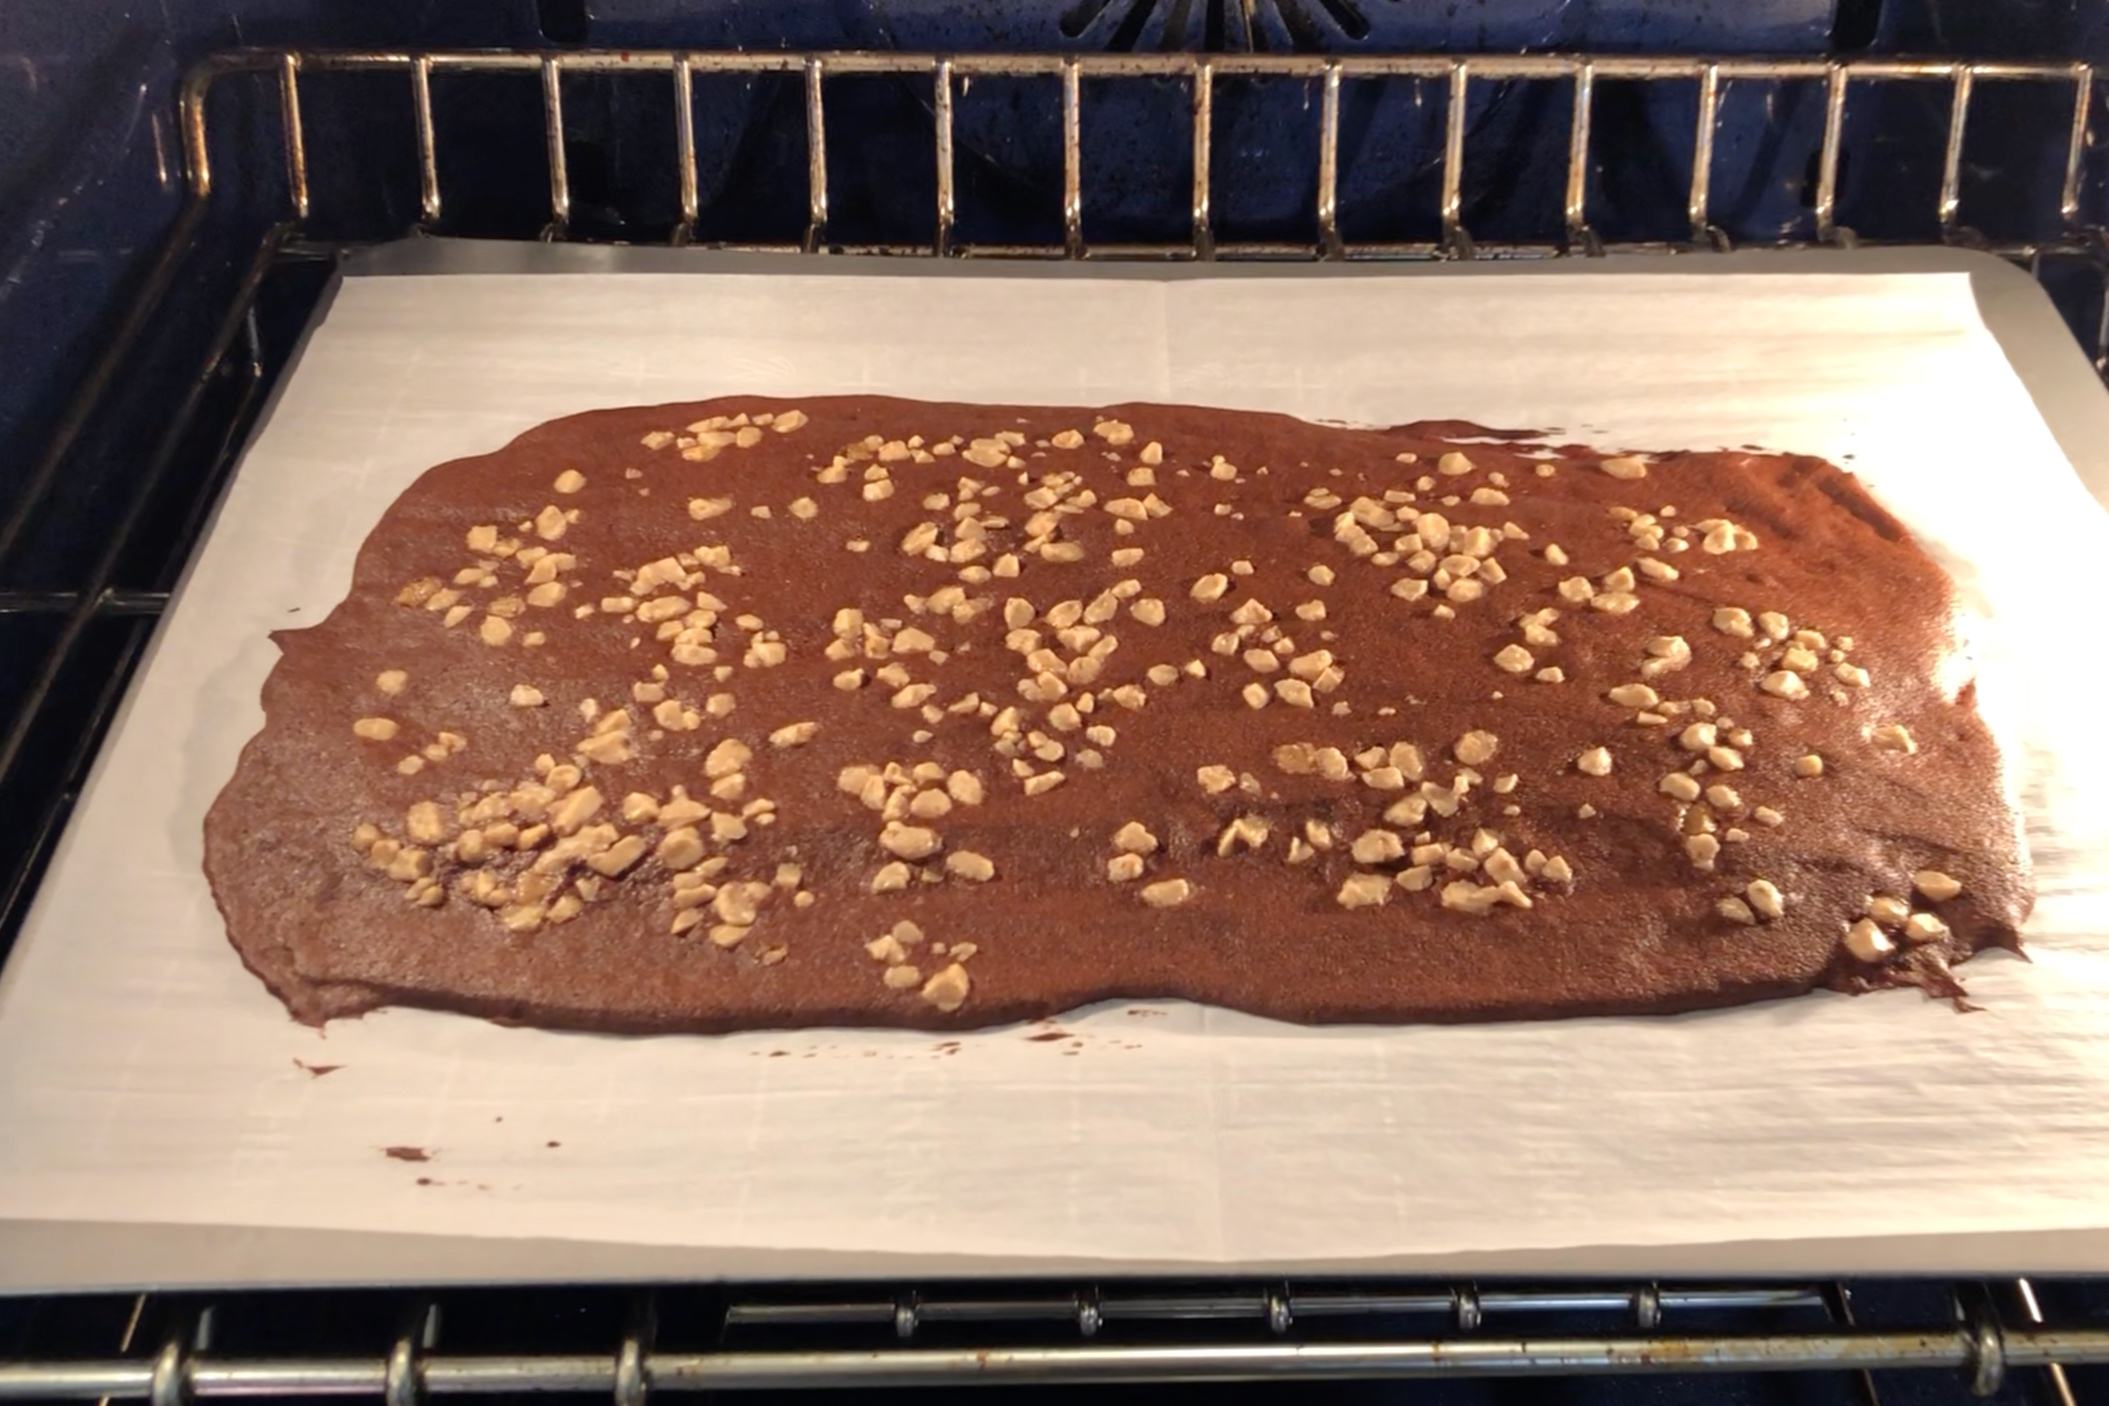 11. Bake sheets one at a time for 17-19 minutes or until the edges of the brownie are just starting to burn. -